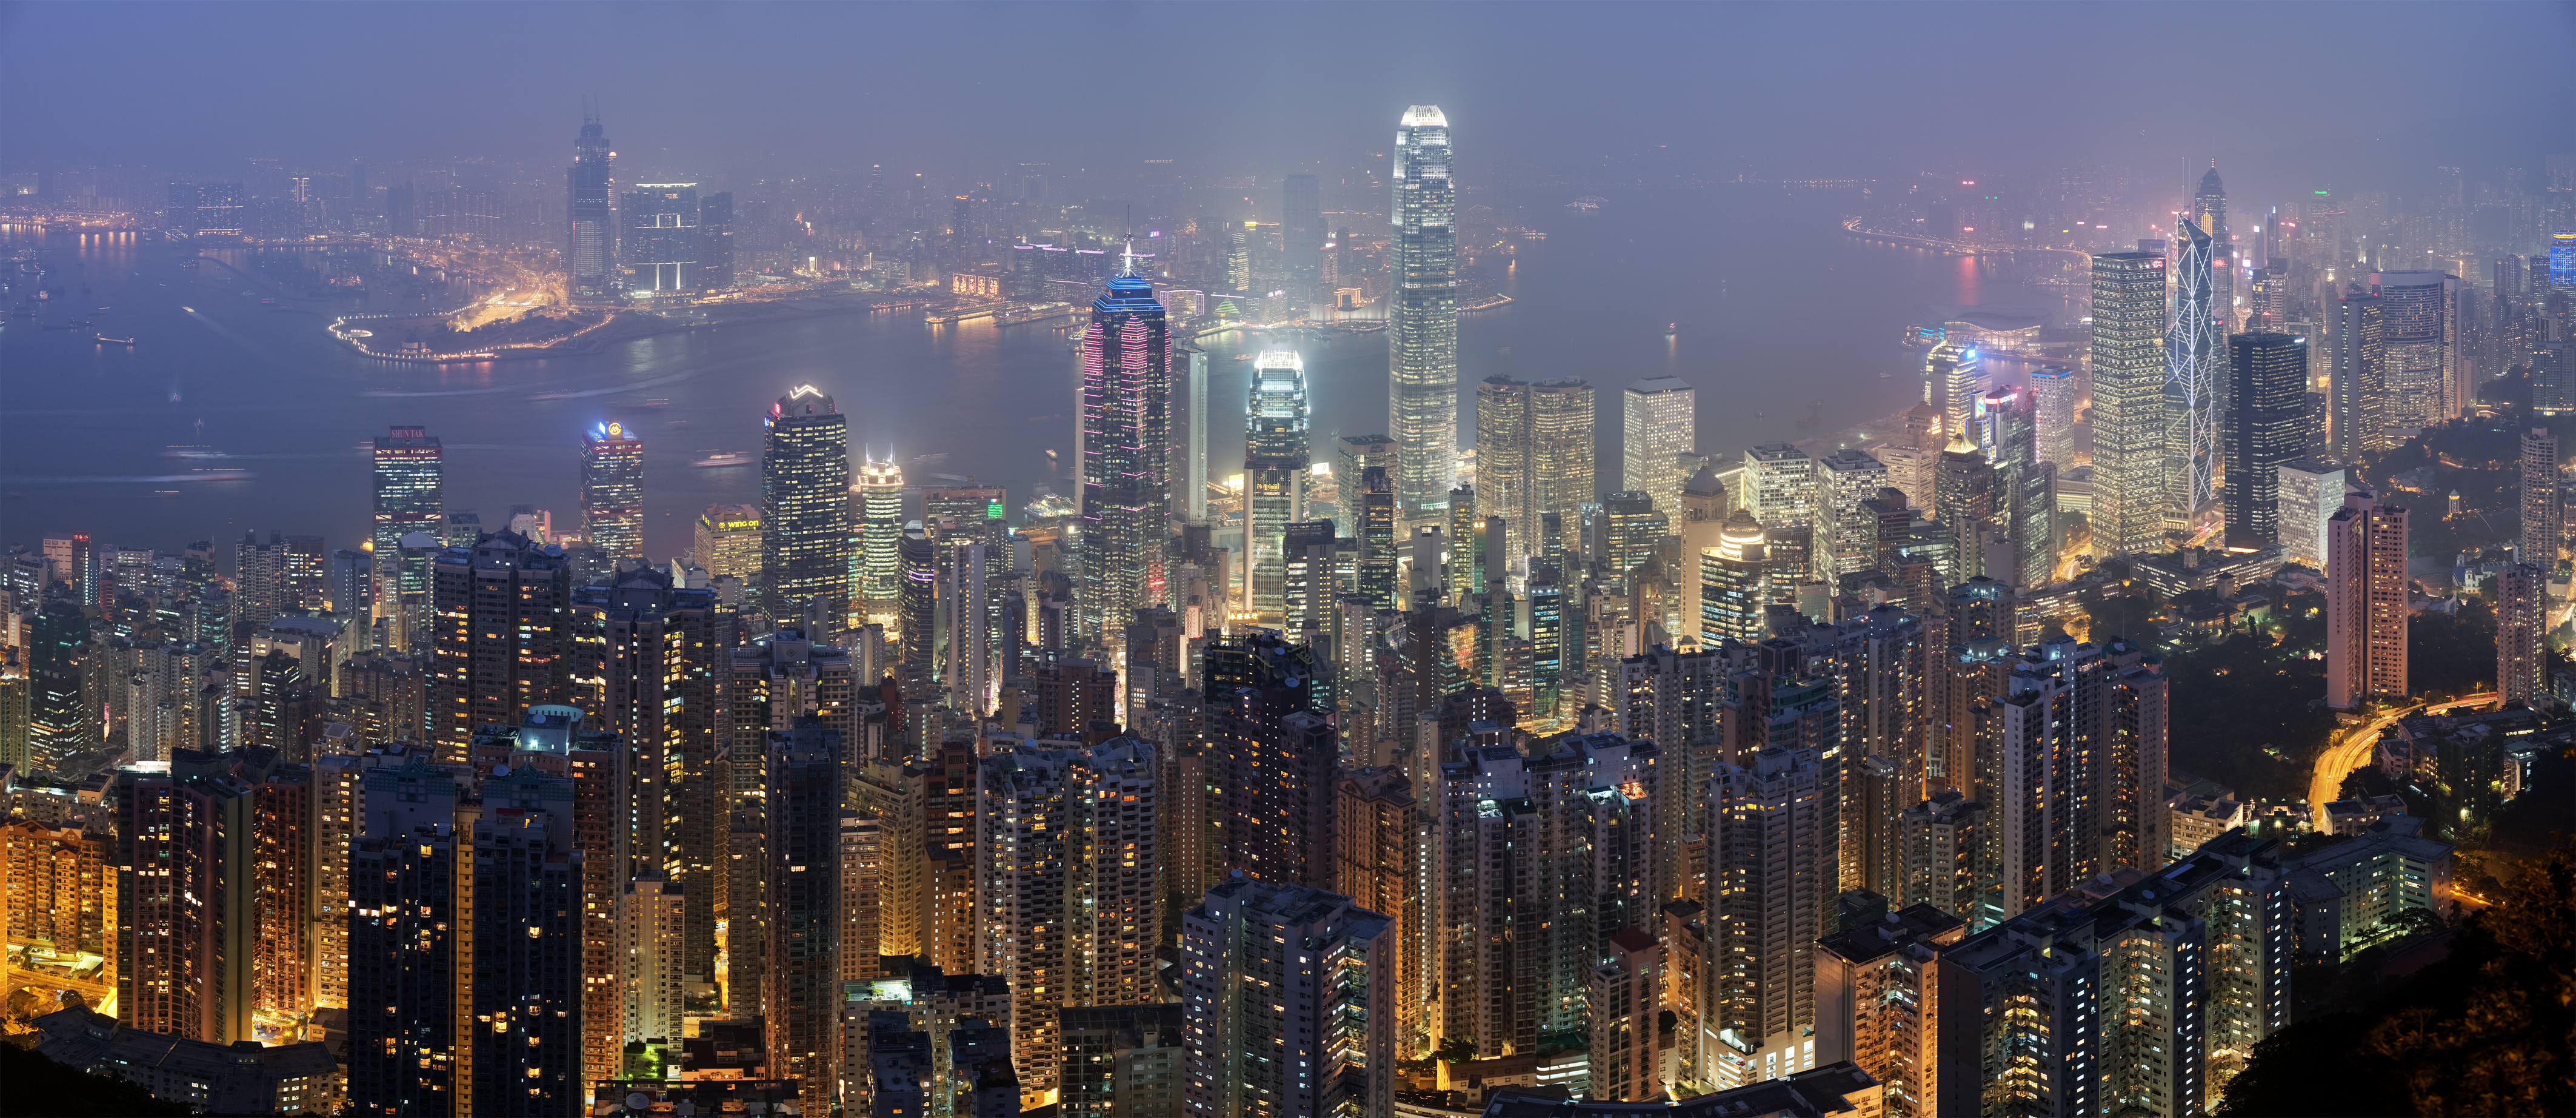 Hong Kong - Wikipedia, the free encyclopedia